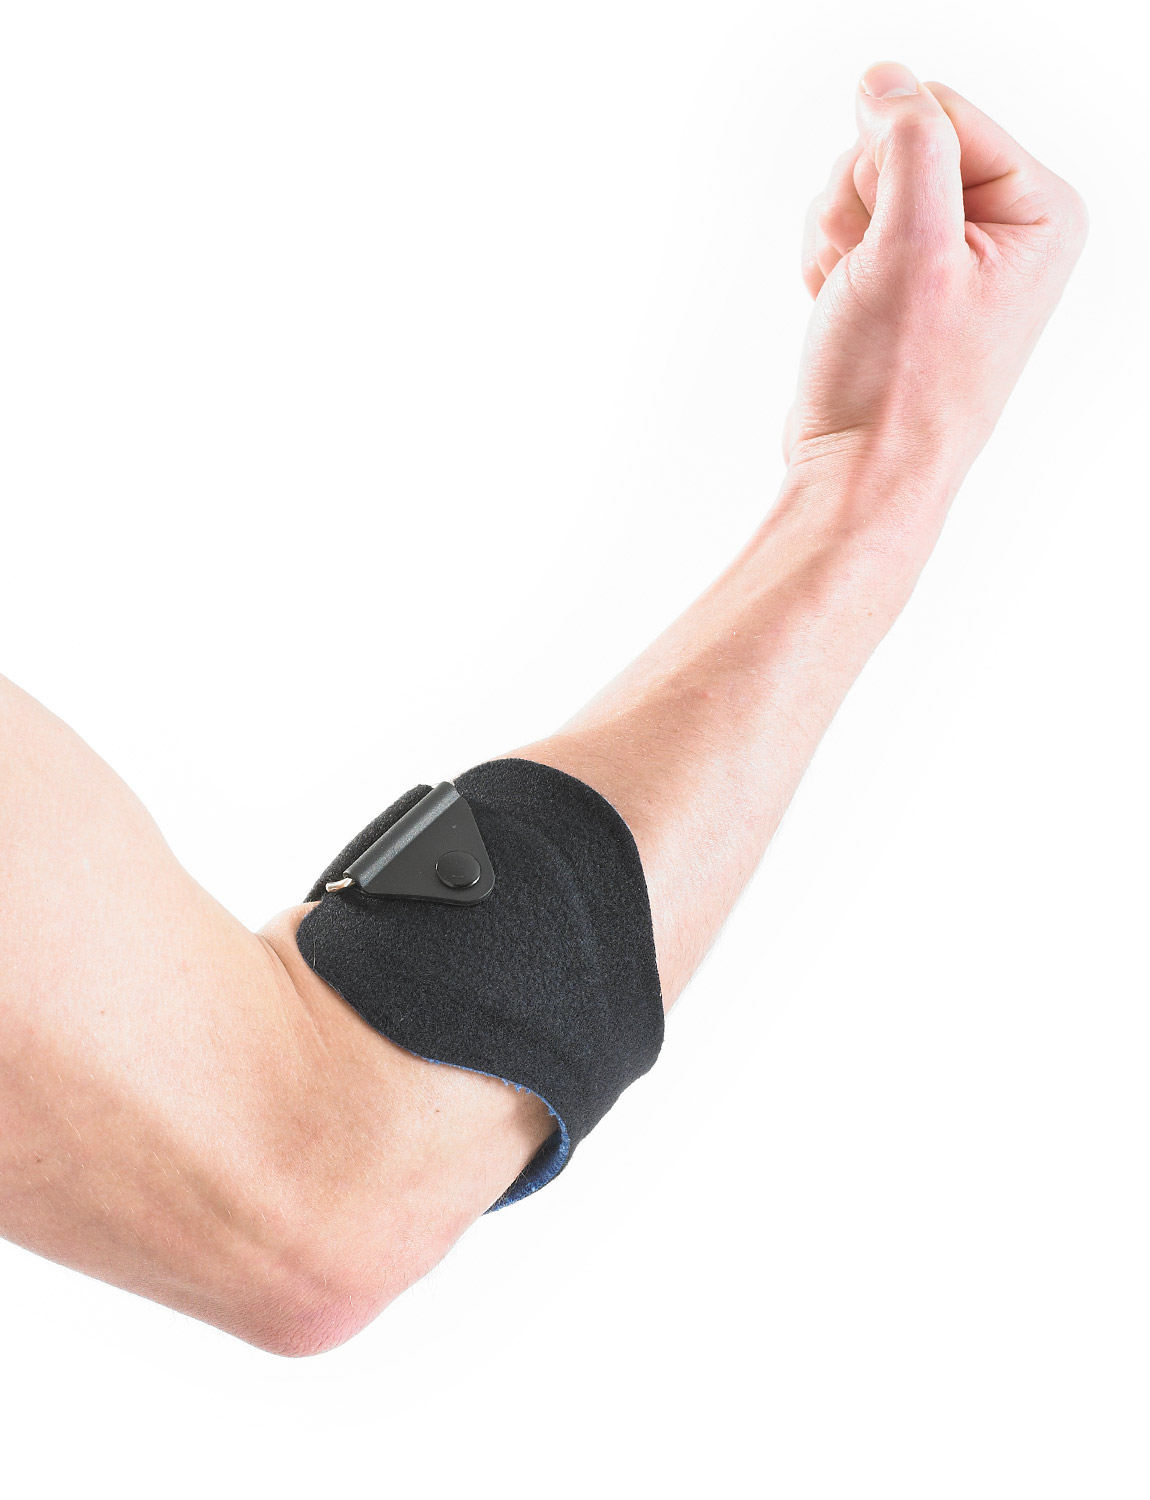 760 - TENNIS/GOLF ELBOW CLASP  Designed to provide dynamic compression and support to the forearm muscles and elbow tendon complex.